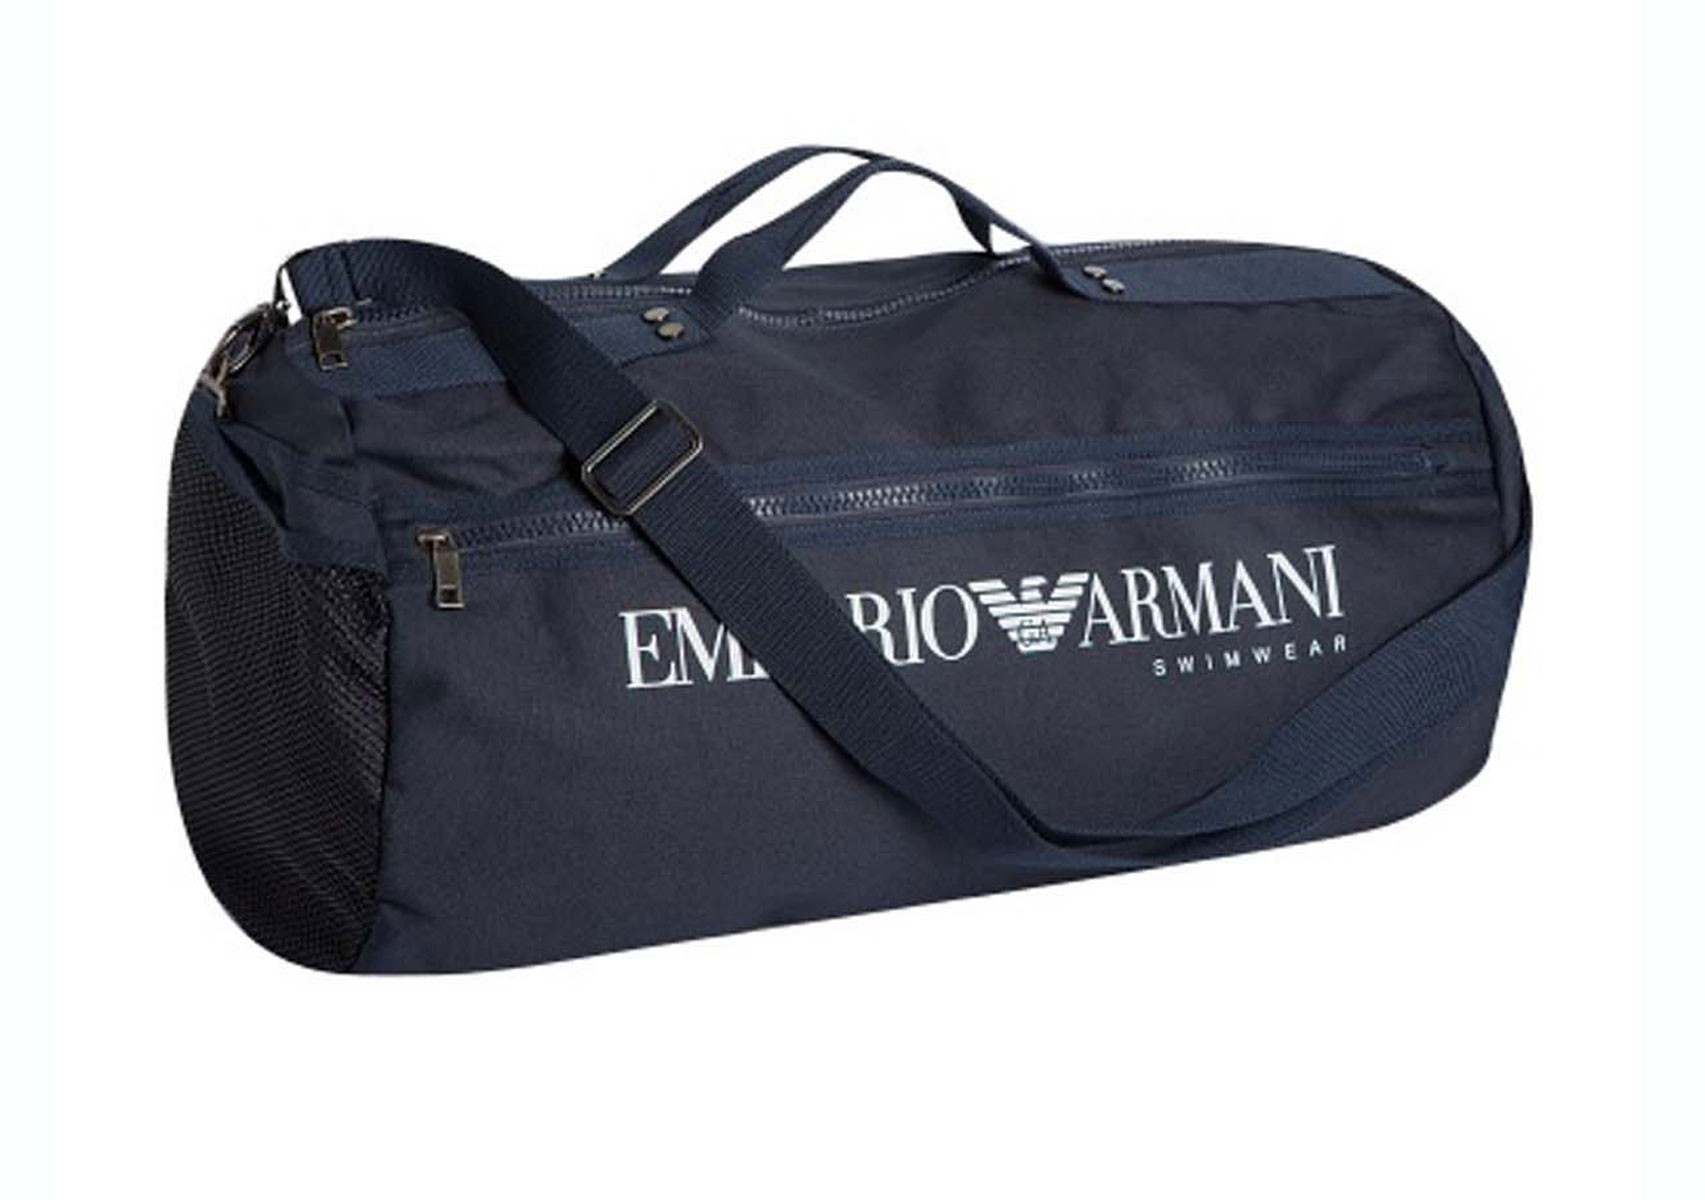 0d8a7d601420 Armani stylish sport bag for sporting beach